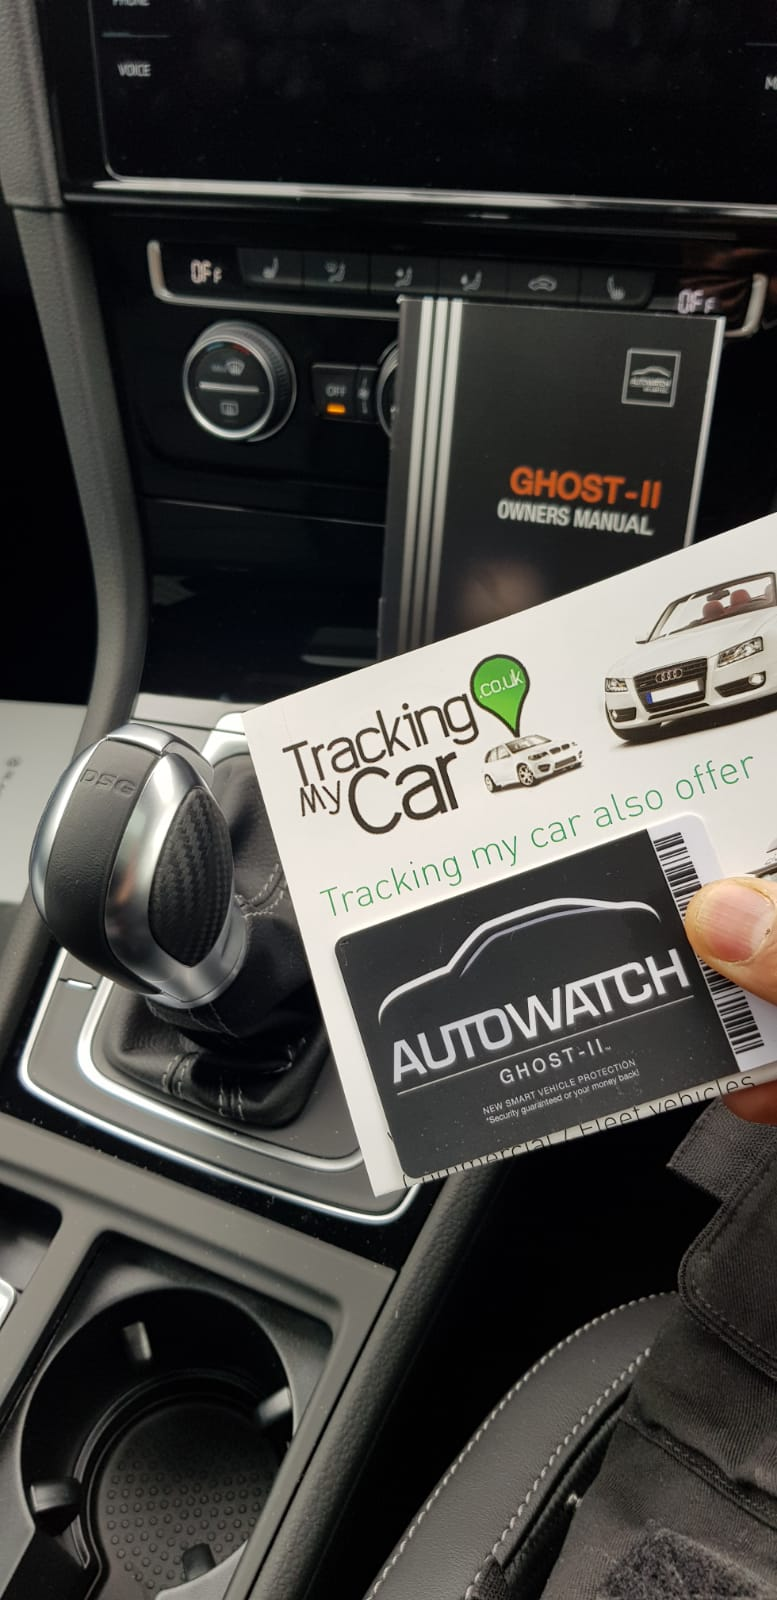 Volkswagen Autowatch Ghost